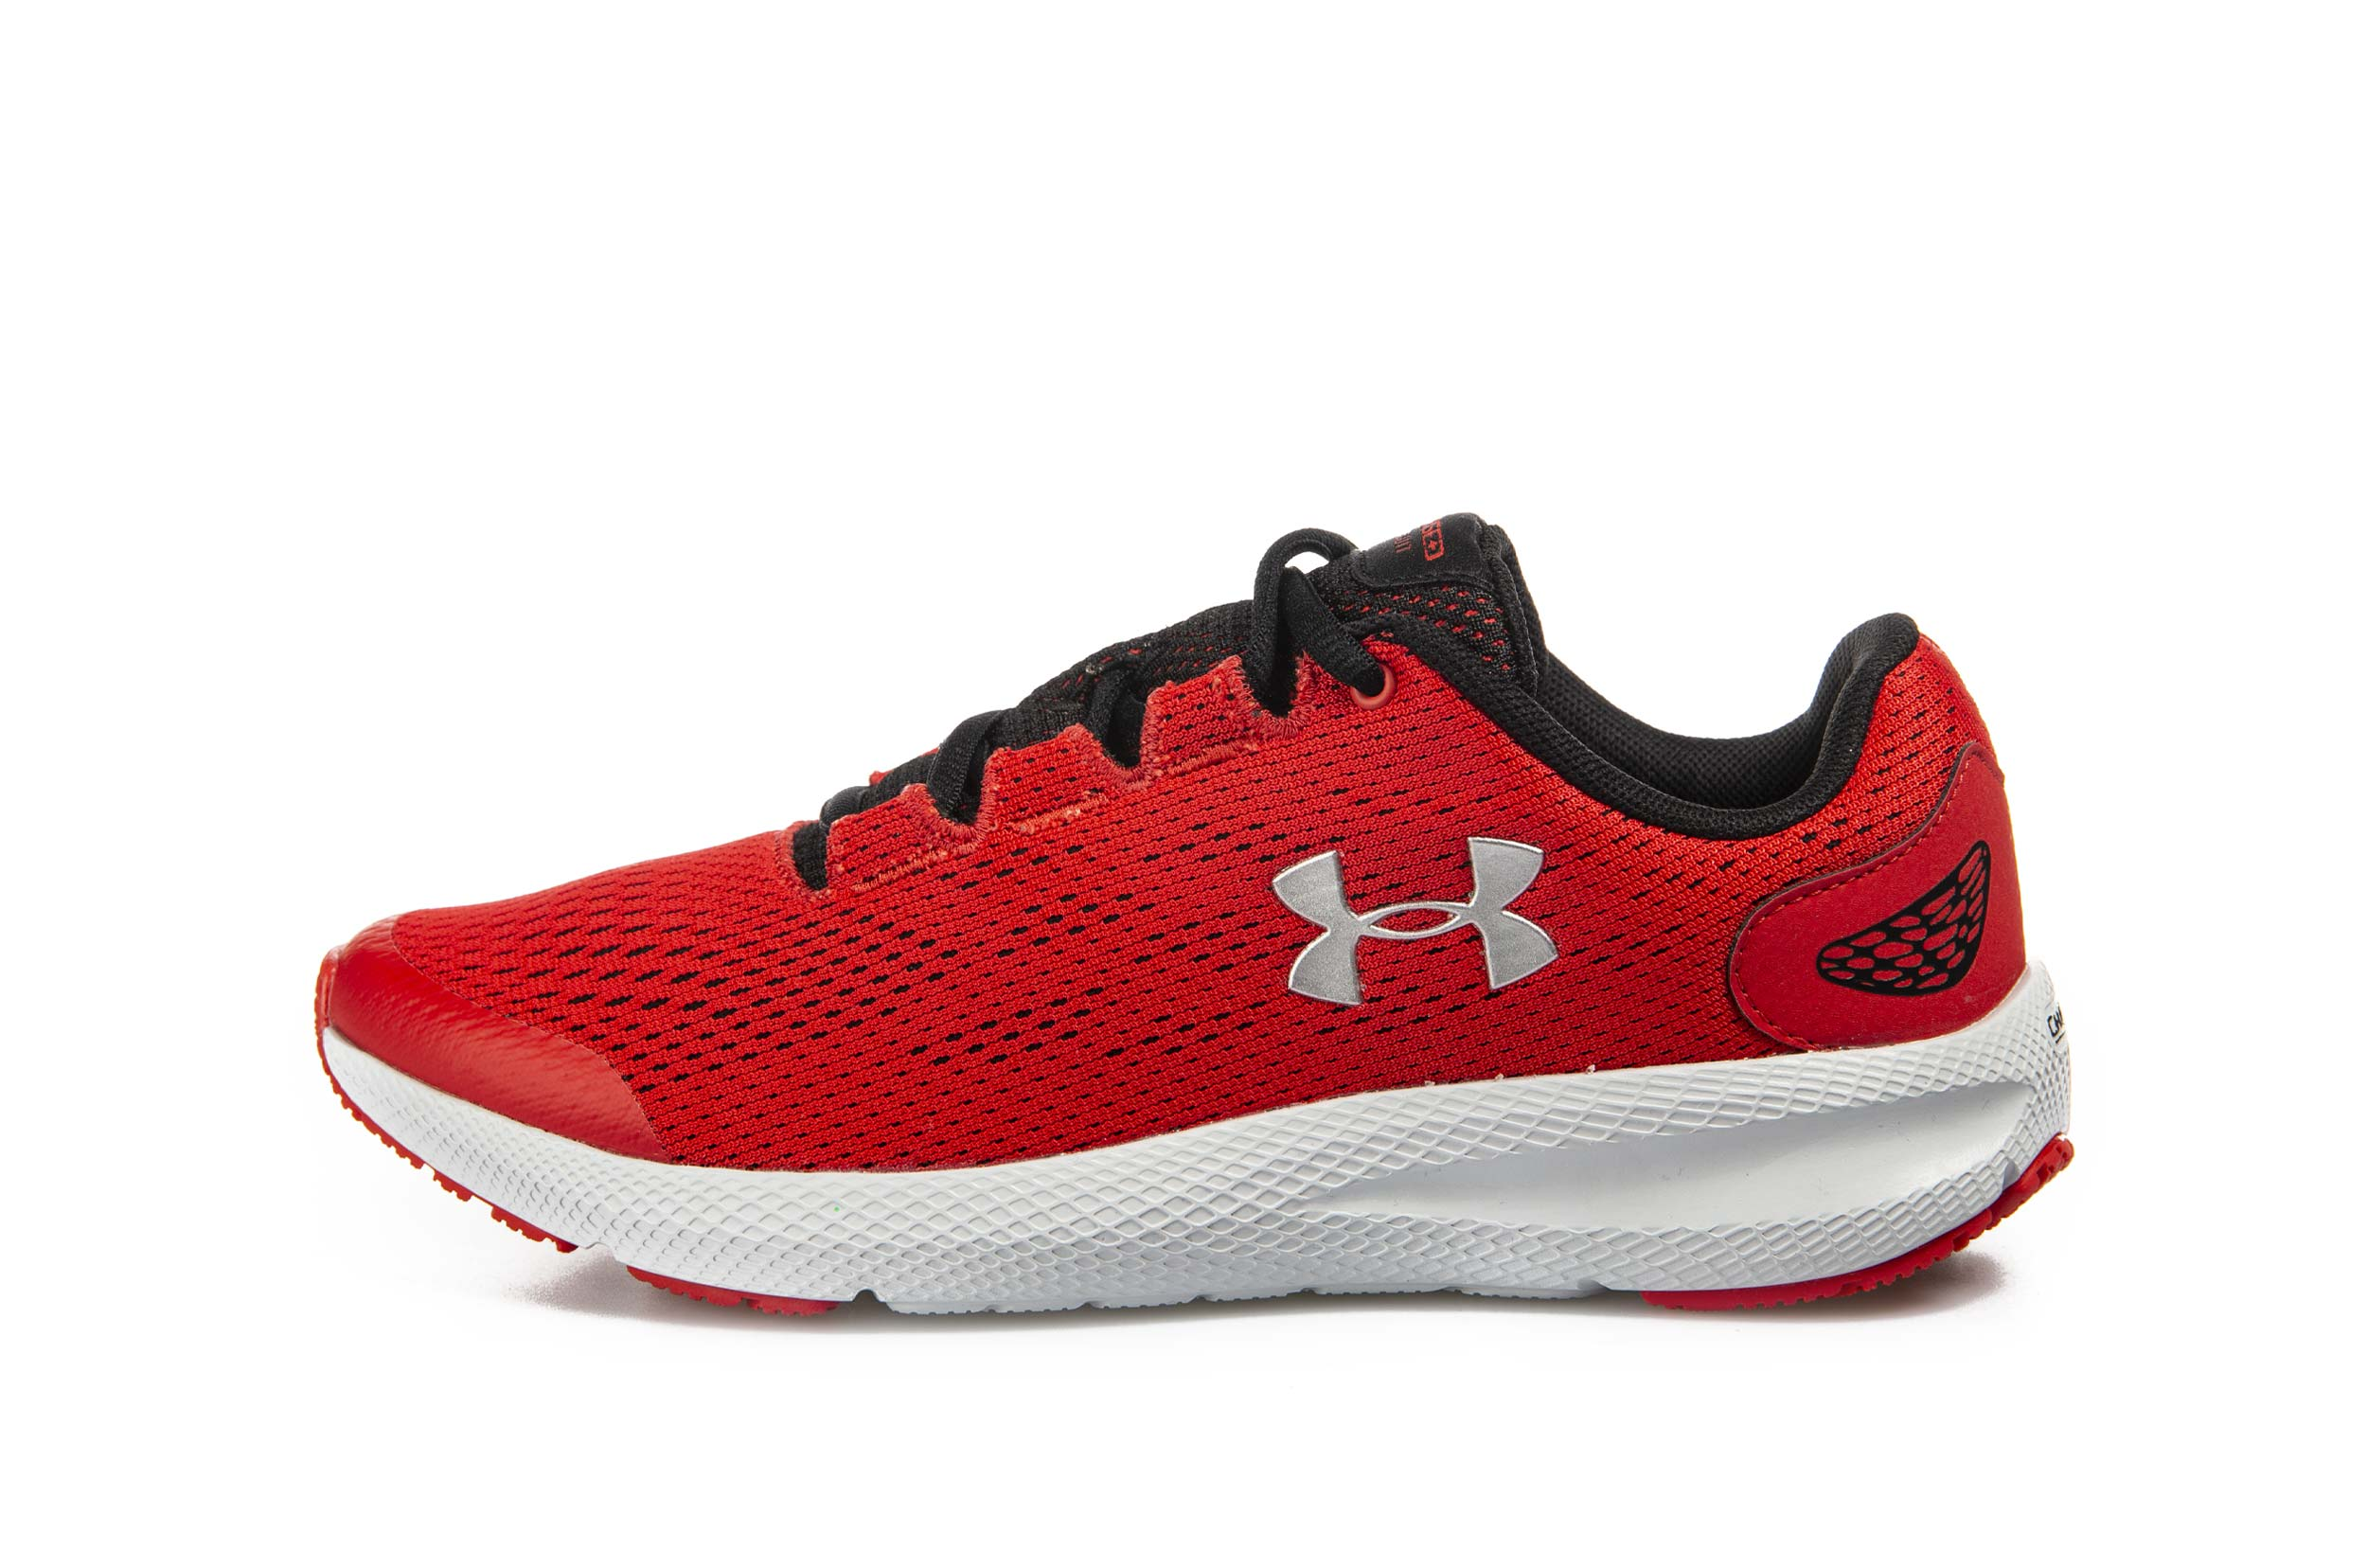 UNDER ARMOUR UA GS CHARGED PURSUIT 2 3022860-600 Κόκκινο